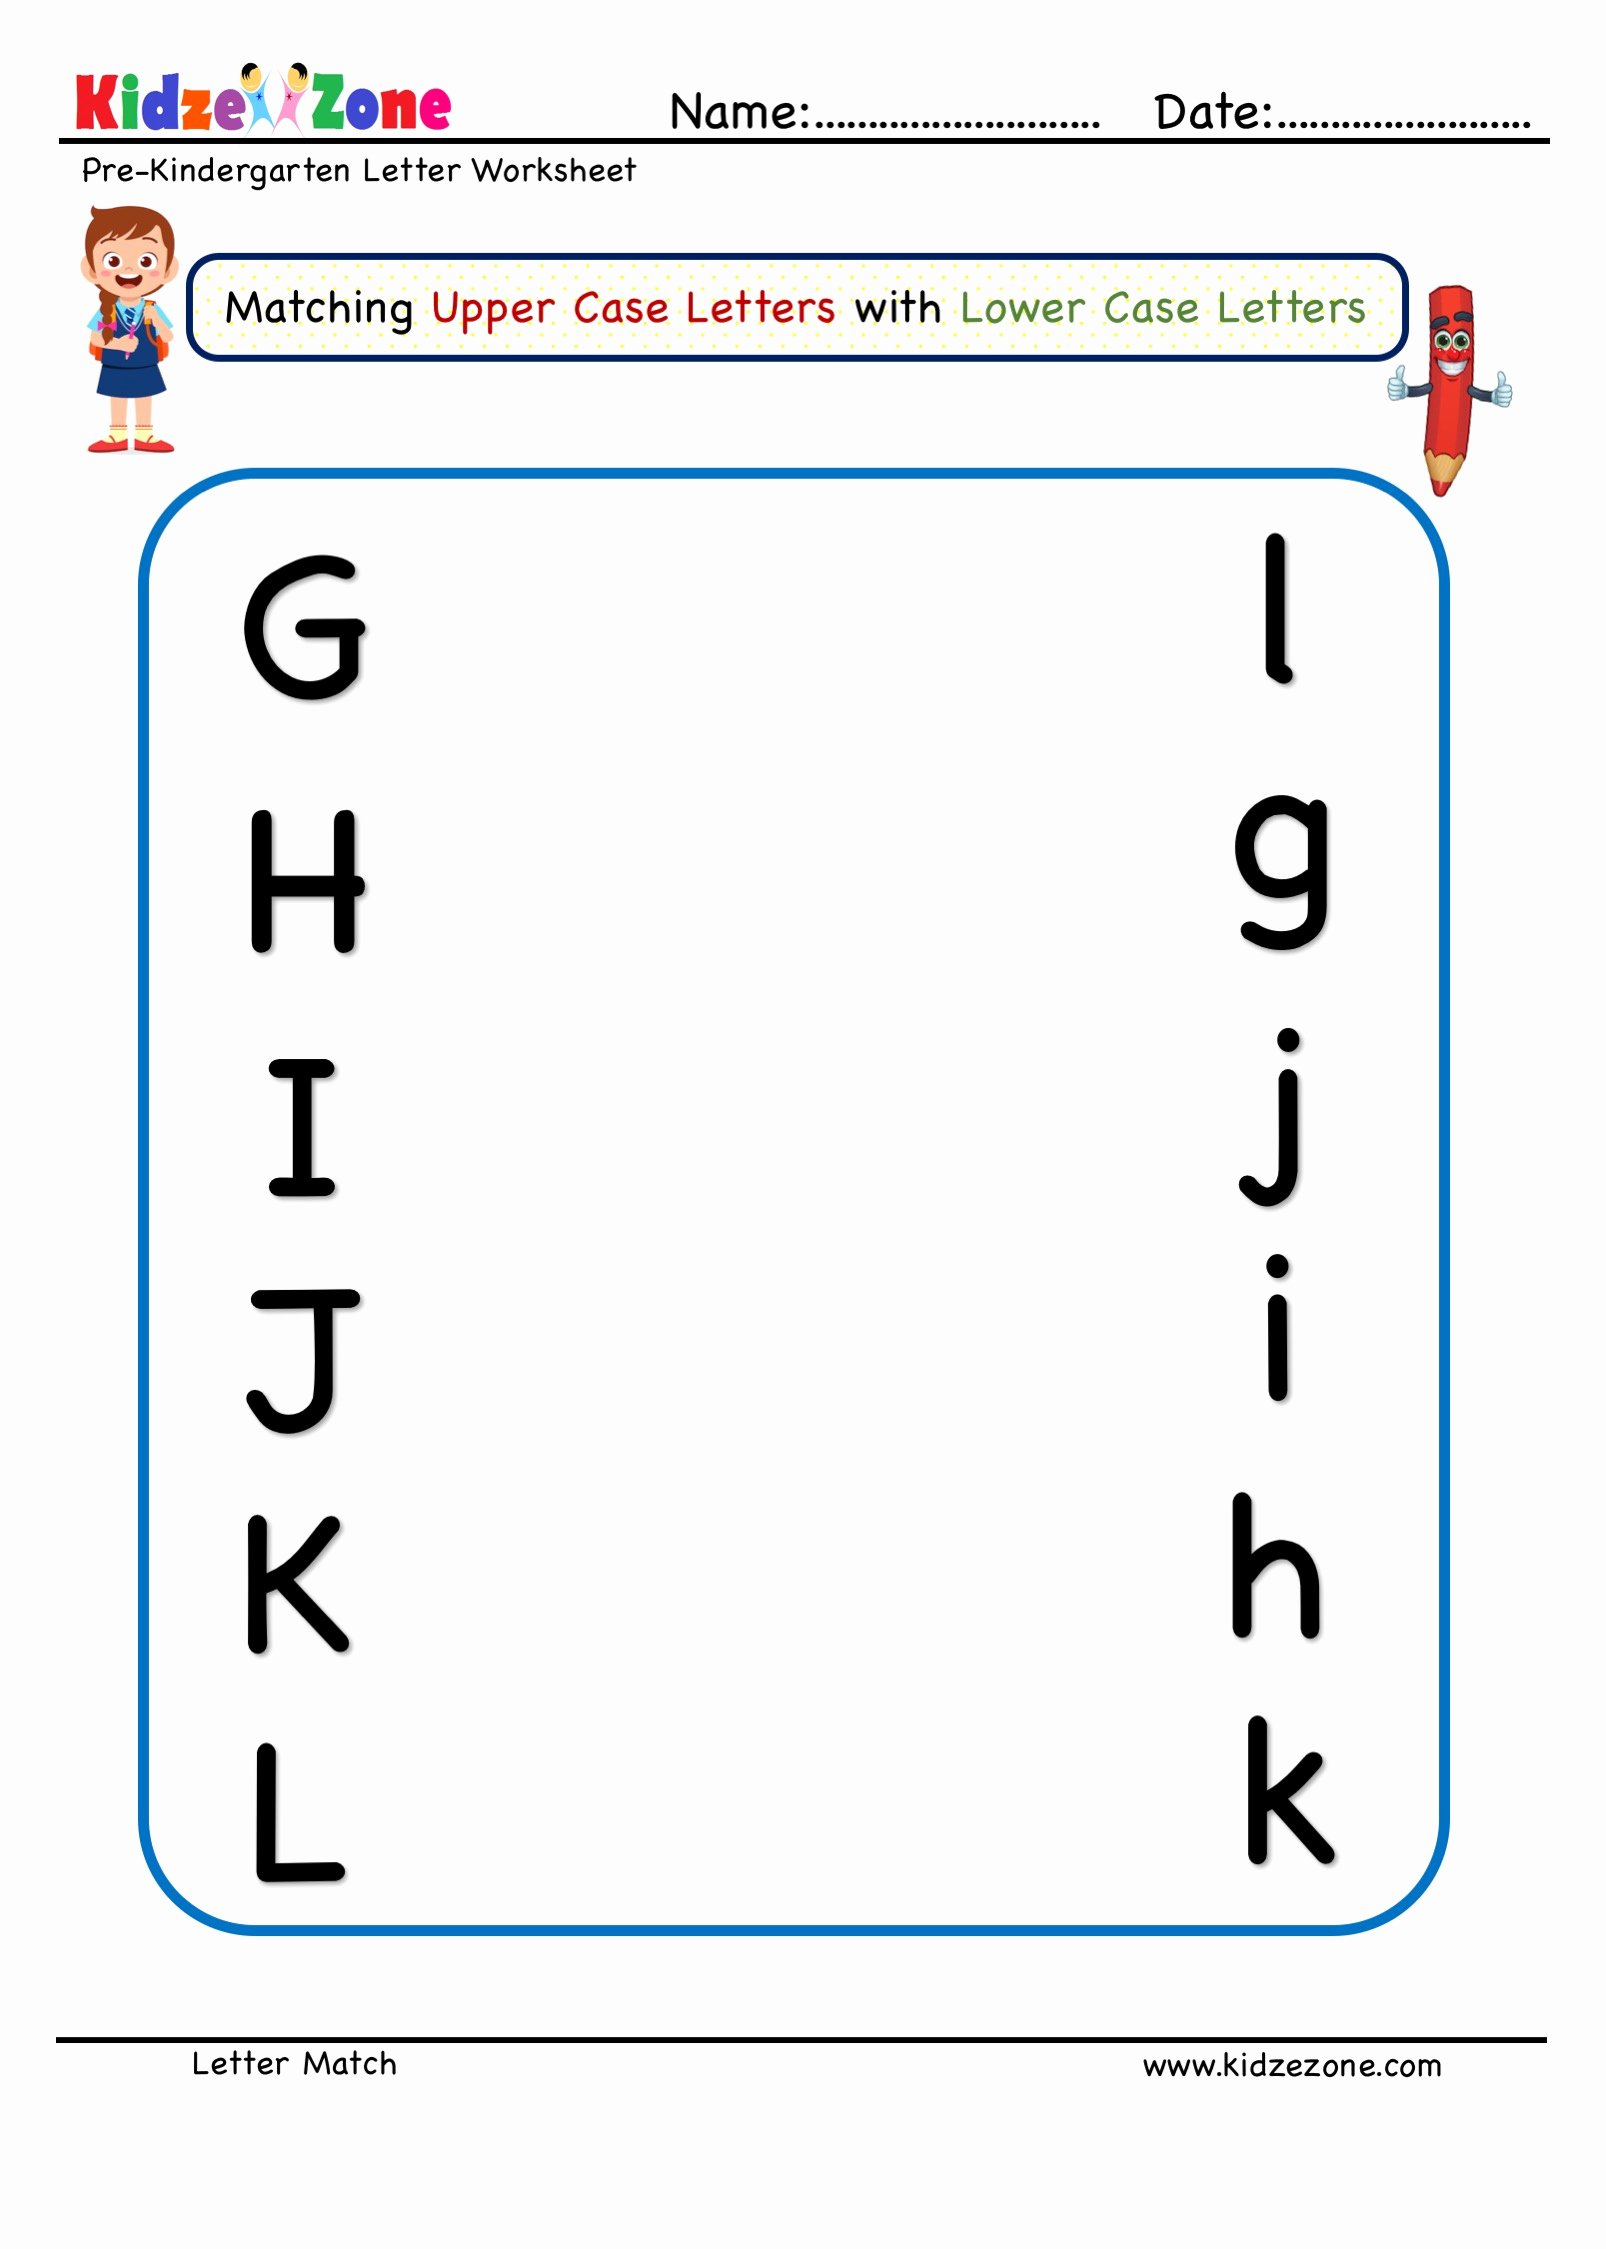 Matching Letters Worksheets for Preschoolers Lovely Preschoolh Upper Case to Lower Letter Worksheet G L Coloring